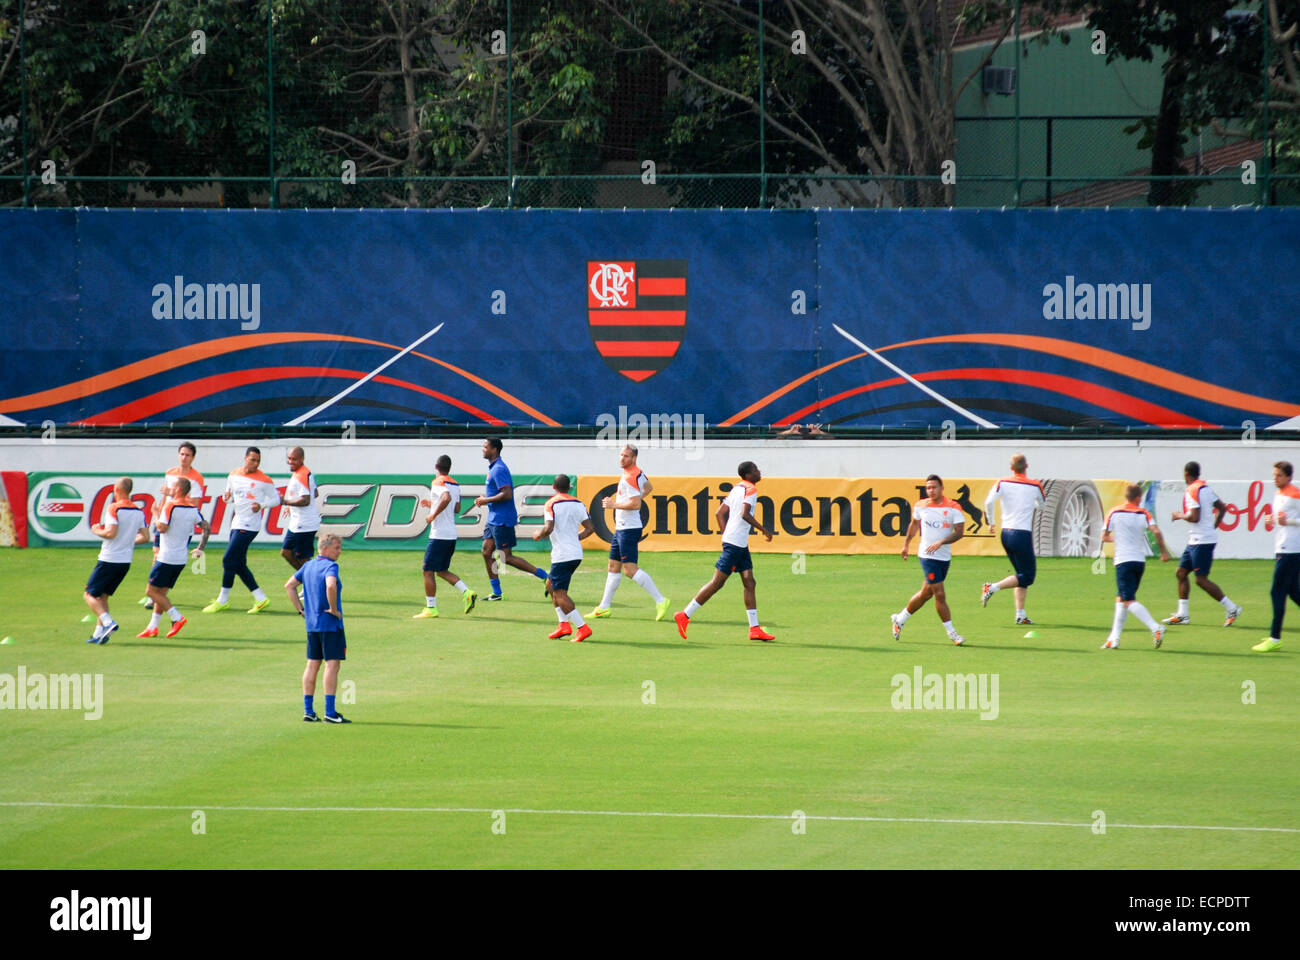 0c28de422 The Netherlands national football team holds a training practice at the  Regata Club of Flamengo